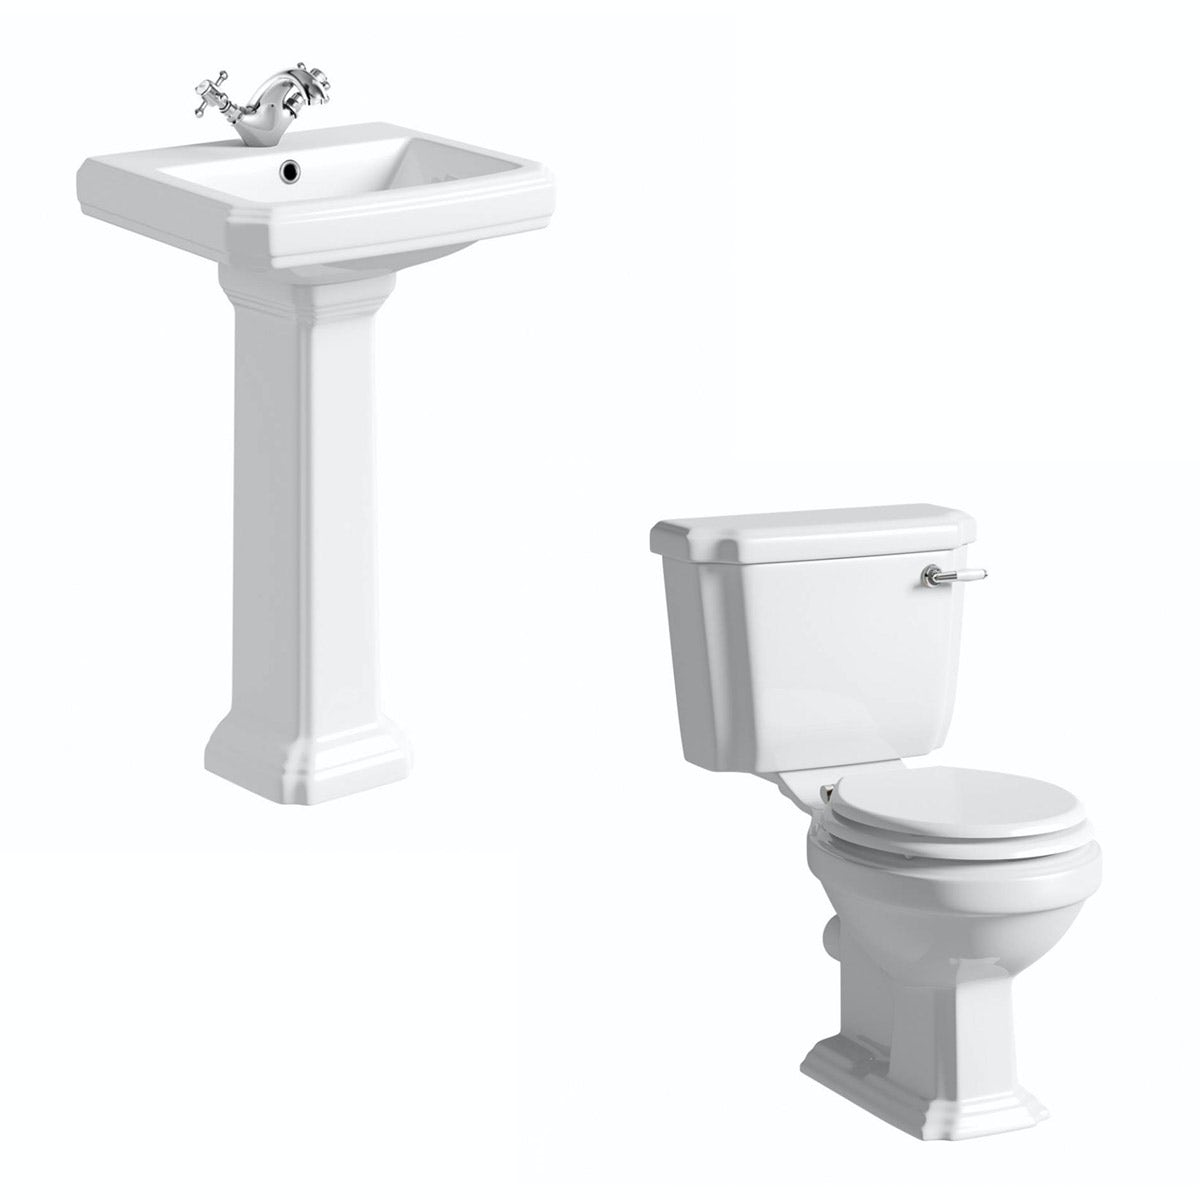 The Bath Co. Dulwich cloakroom suite with white seat and full pedestal basin 500mm